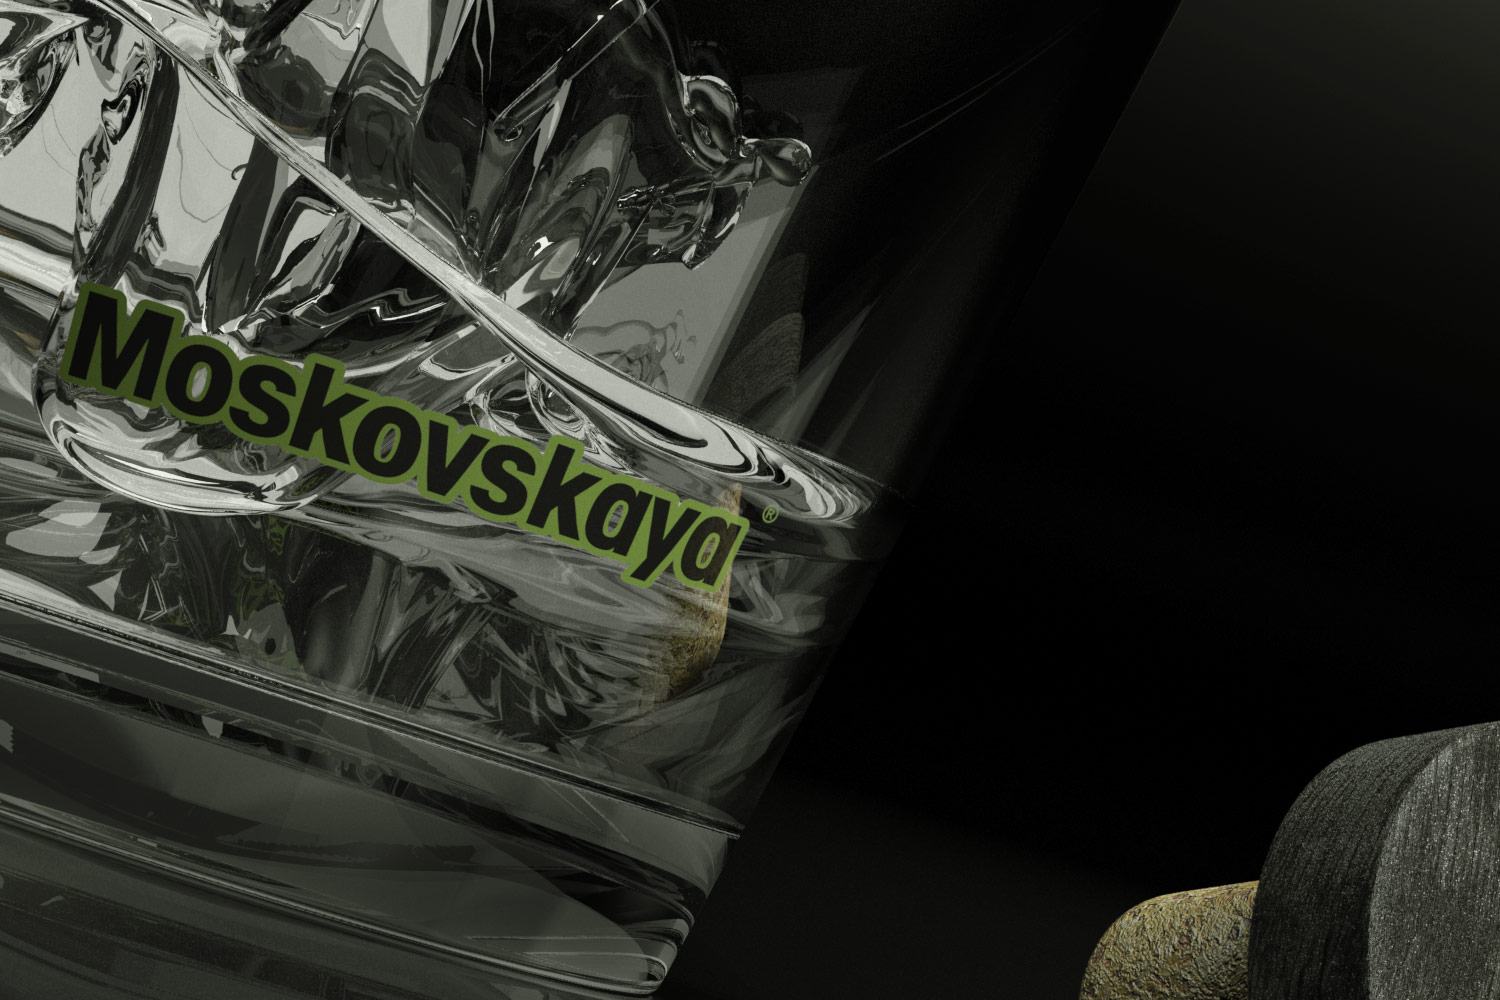 moskovskaya packaging konzept